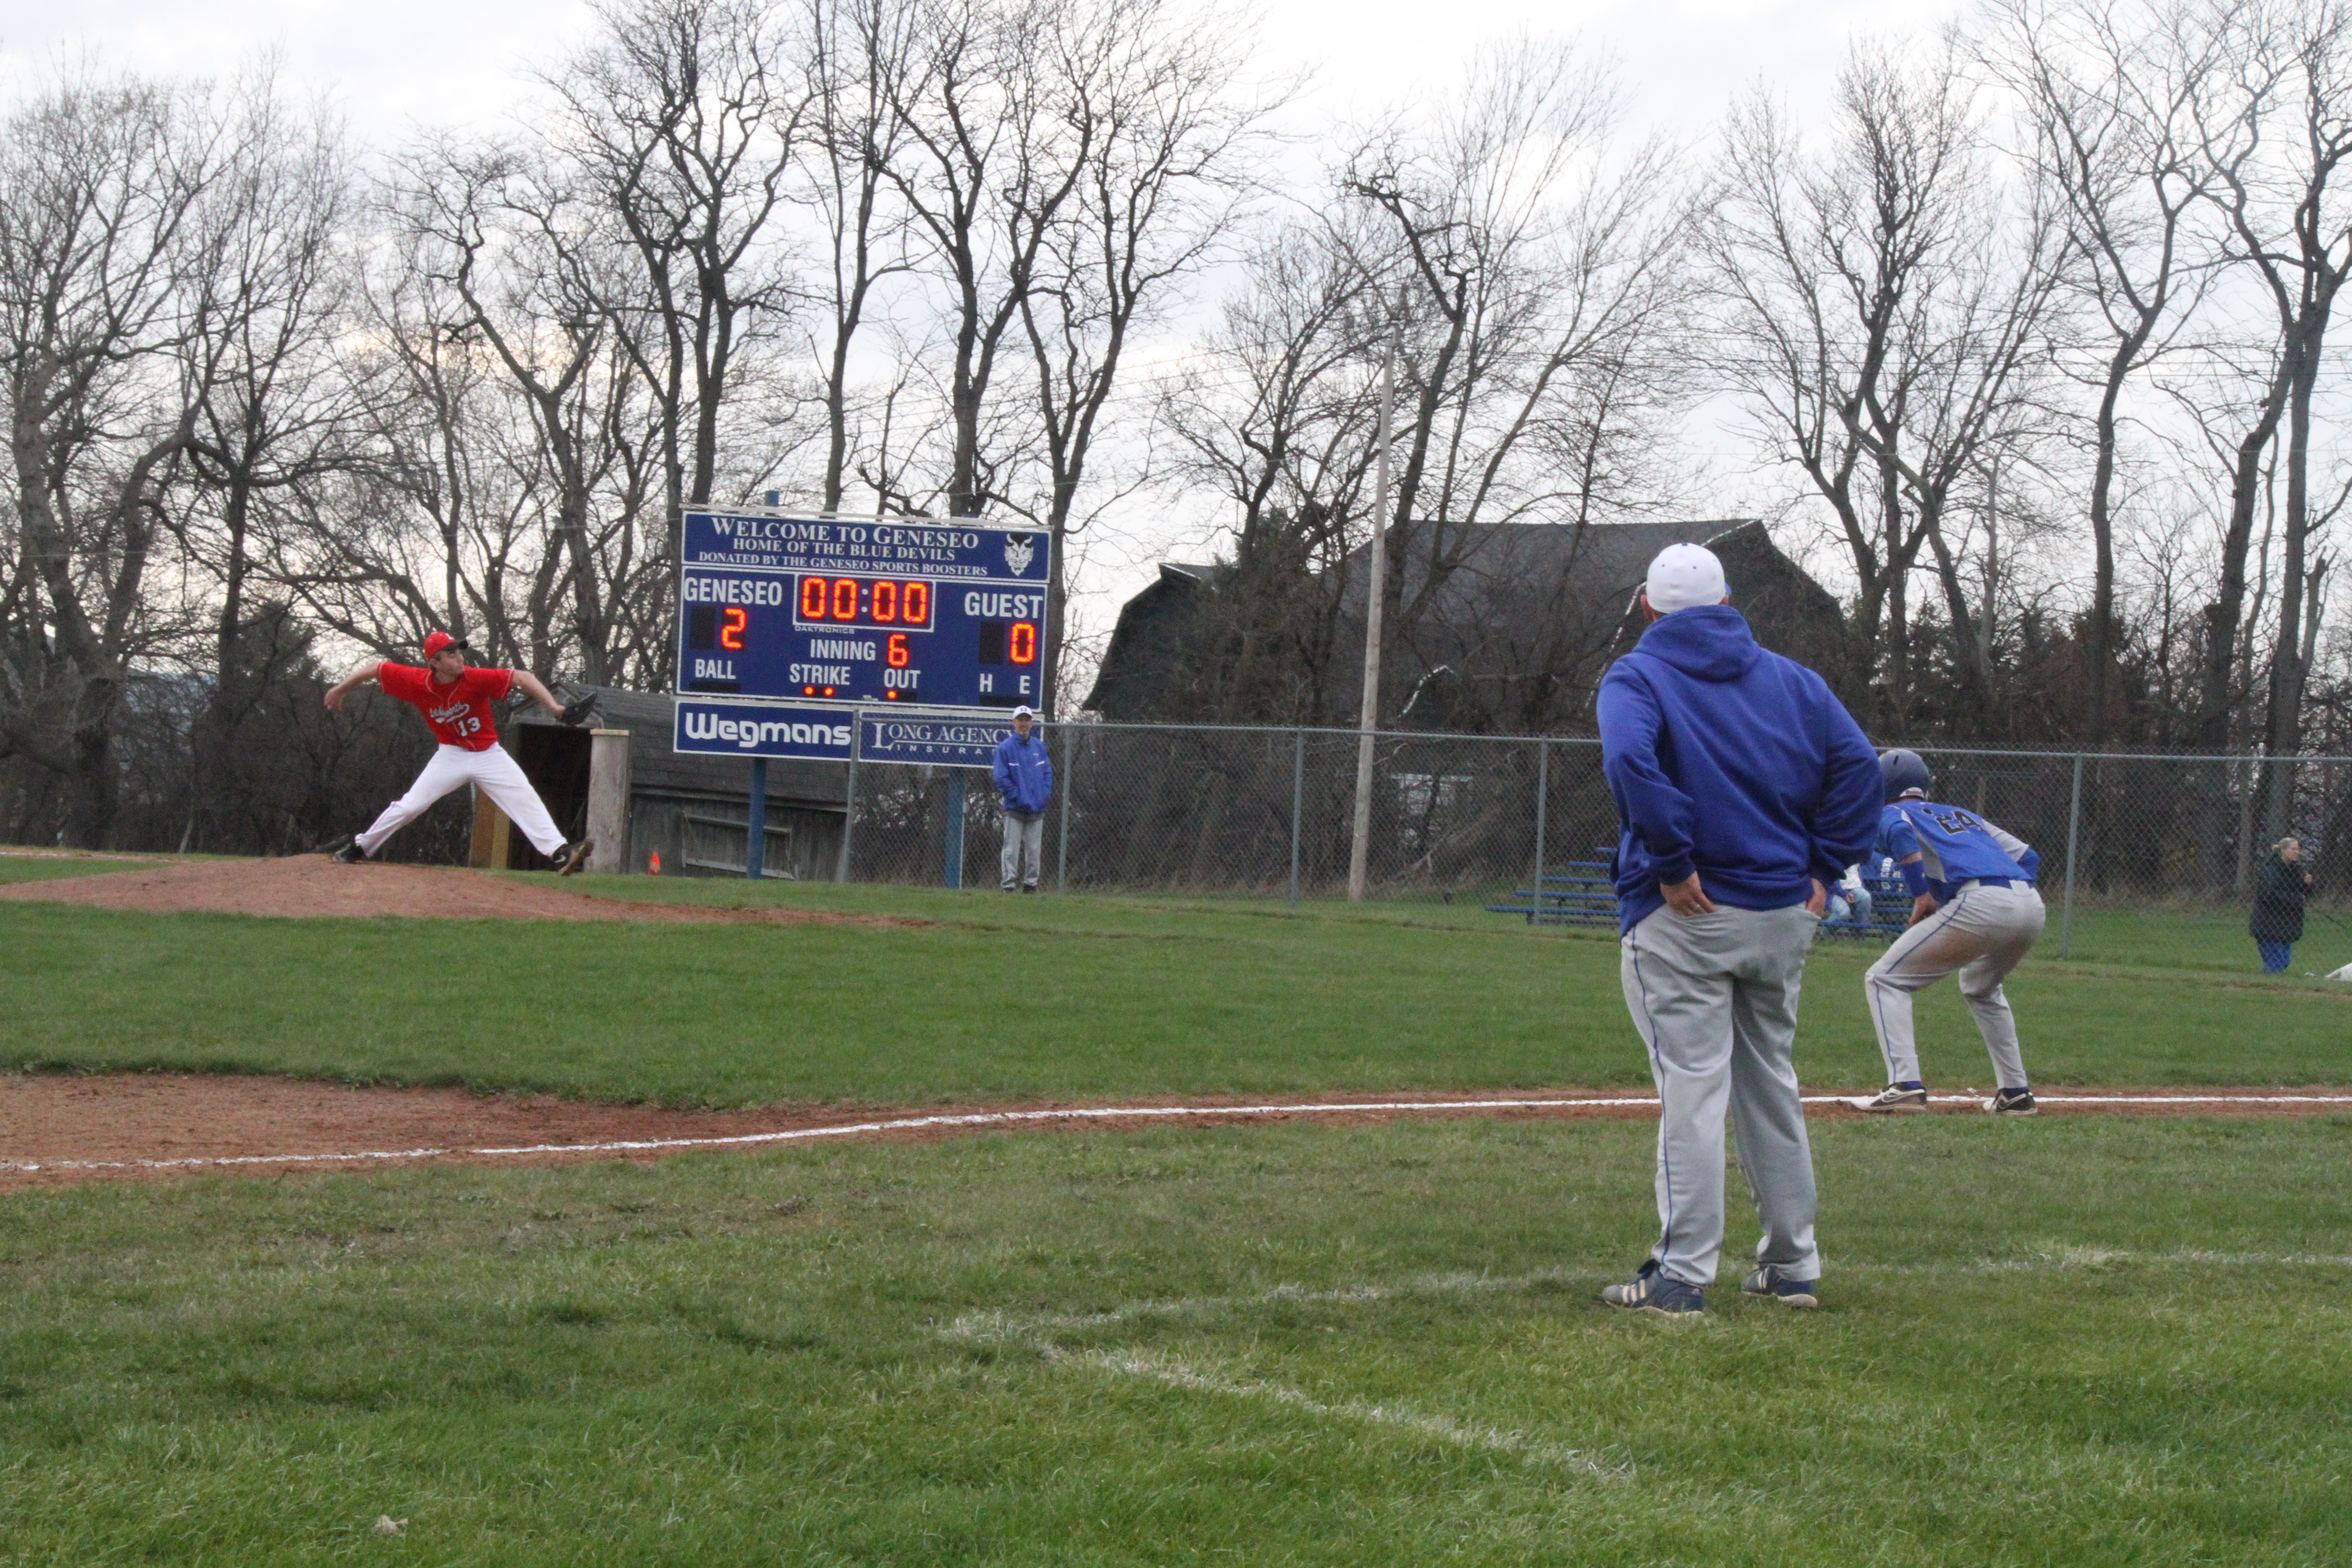 Baseball: Kelly, Phelps shut down Letchworth